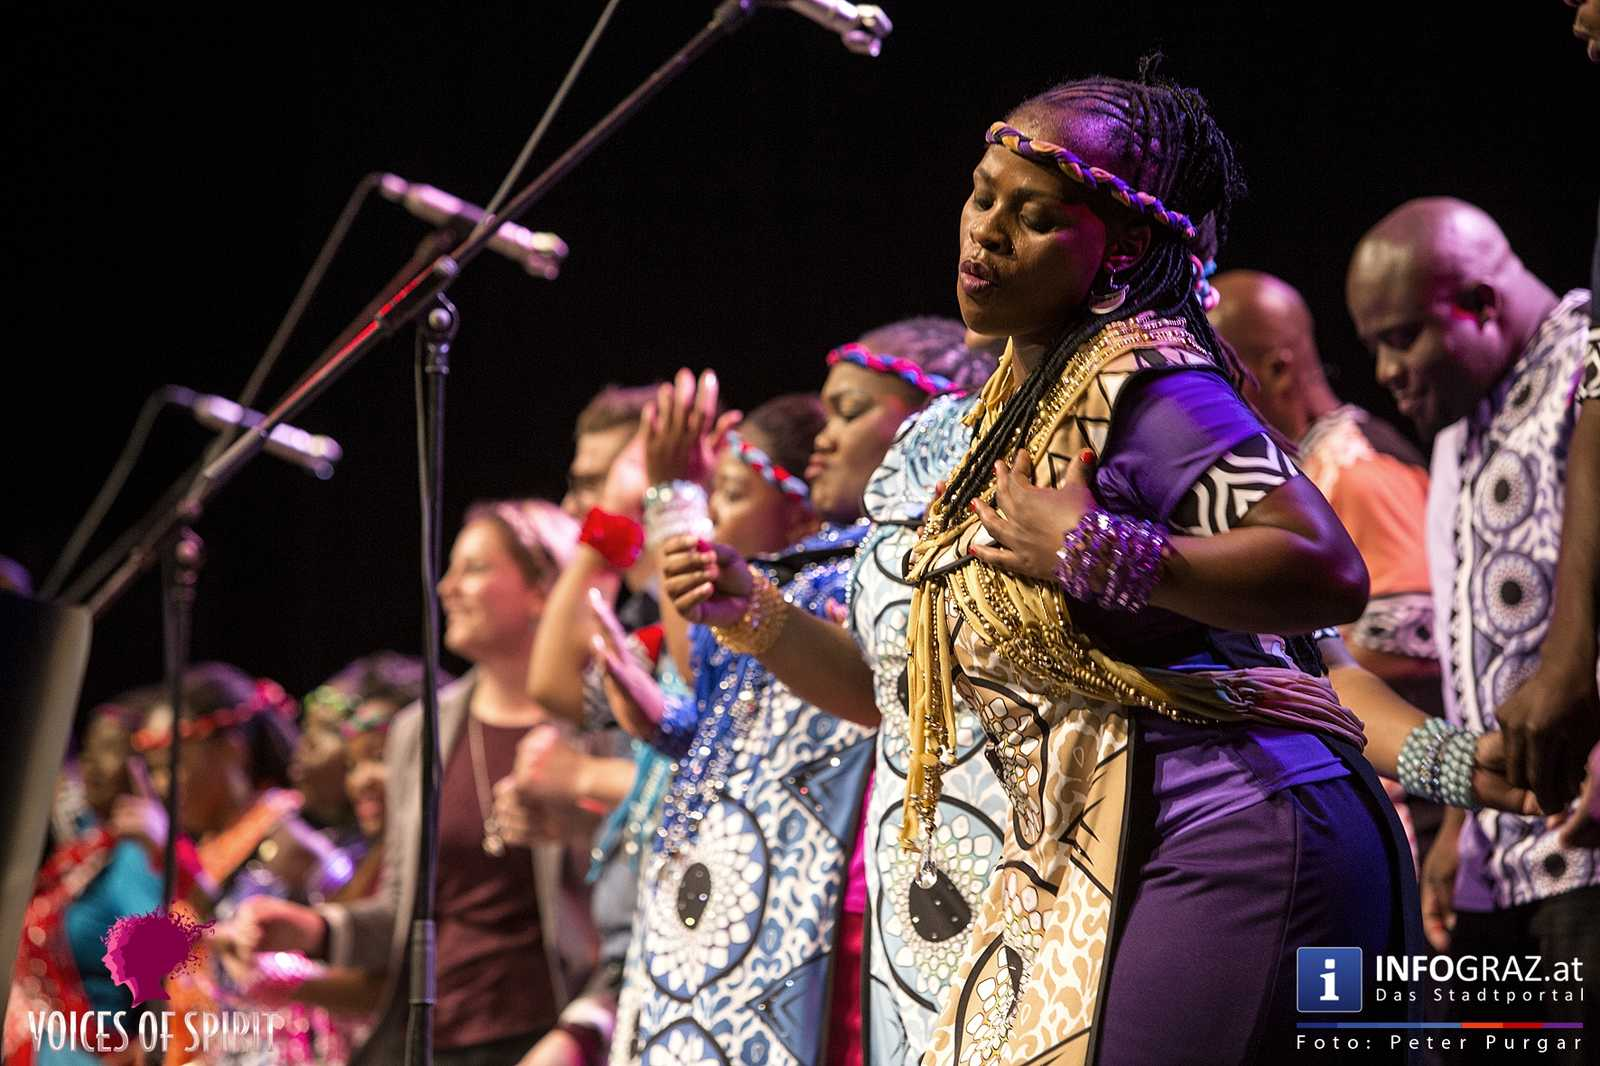 soweto gospel choir internationales chorfestival statdthalle graz voices of spirit eroeffnung festivals 2016 125